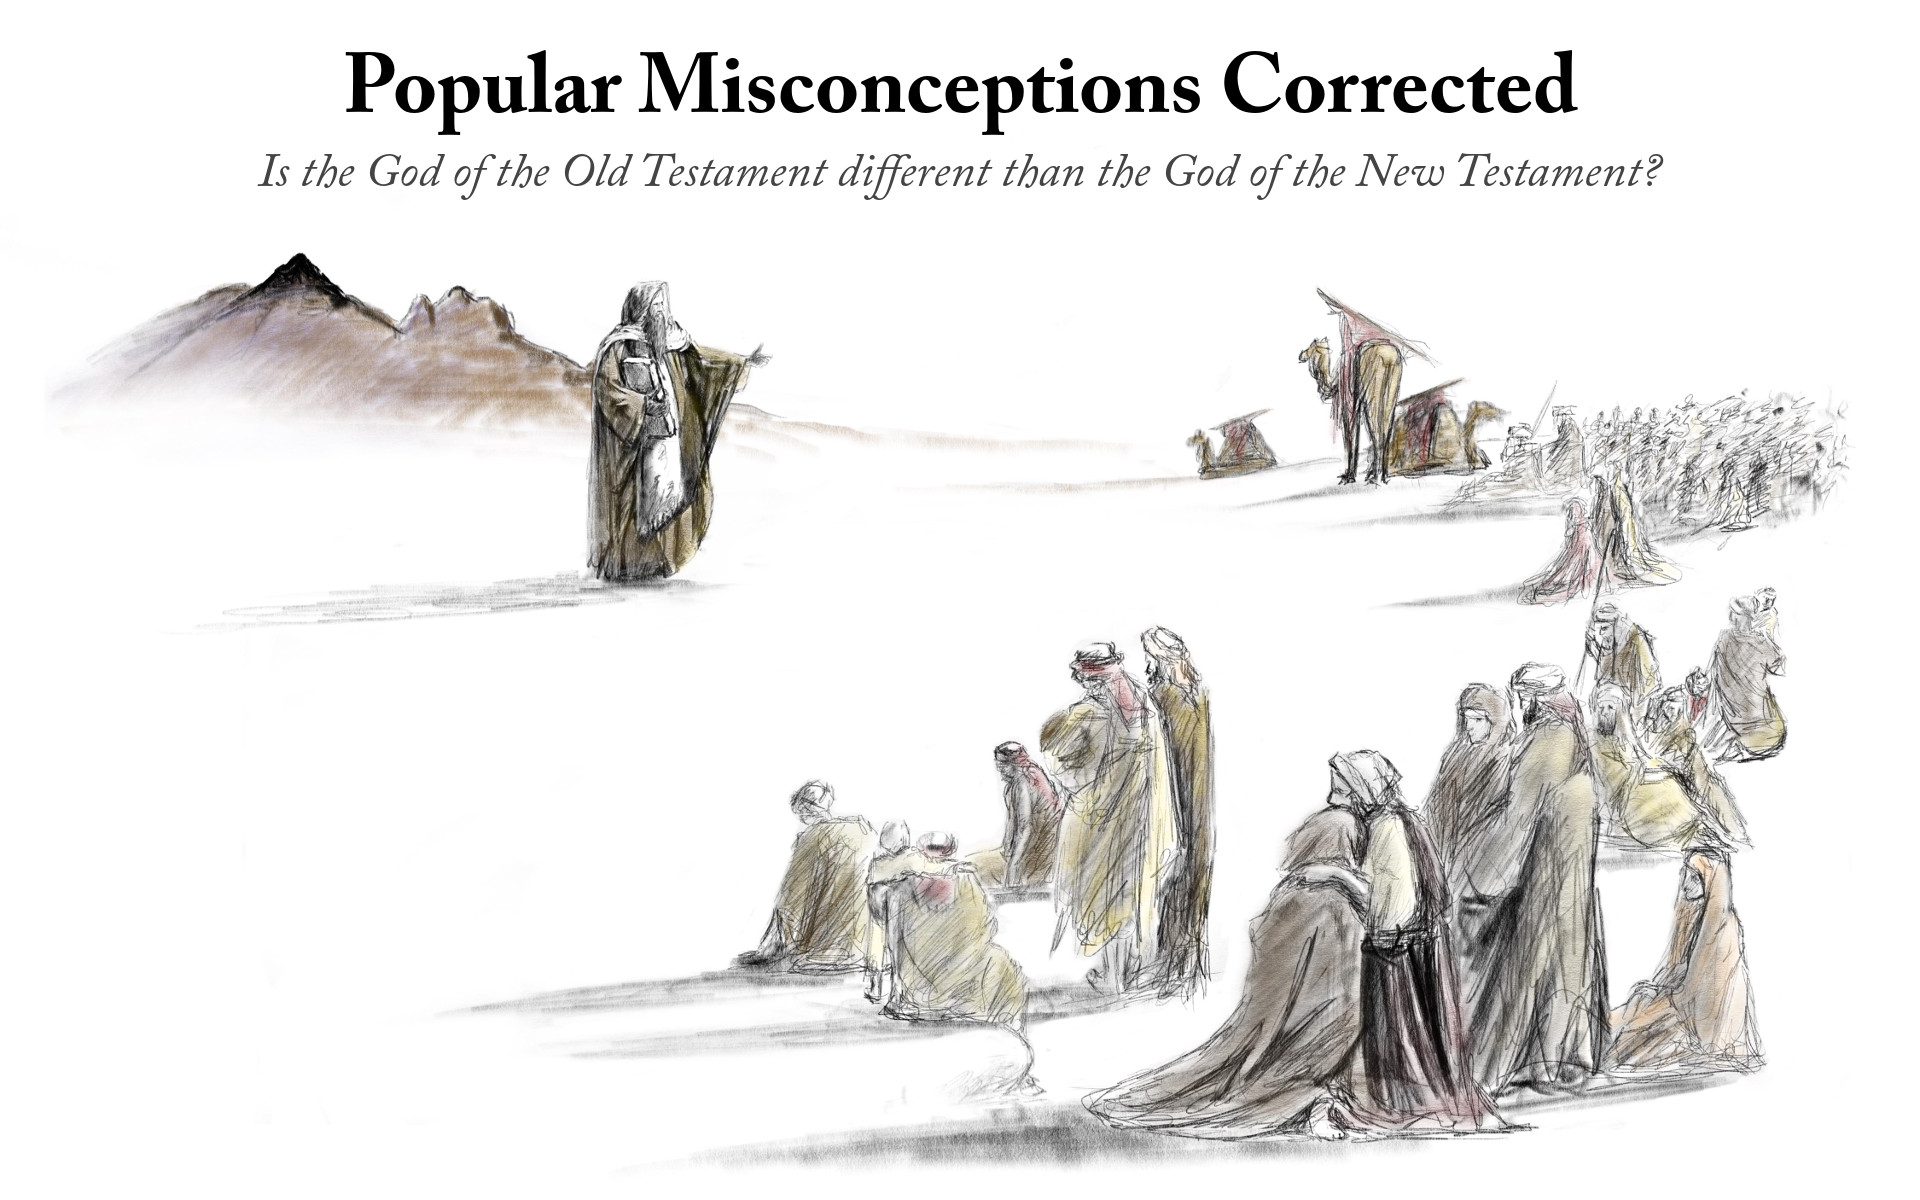 Popular Misconceptions - Is the God of the Old Testament different than the God of the New Testament?